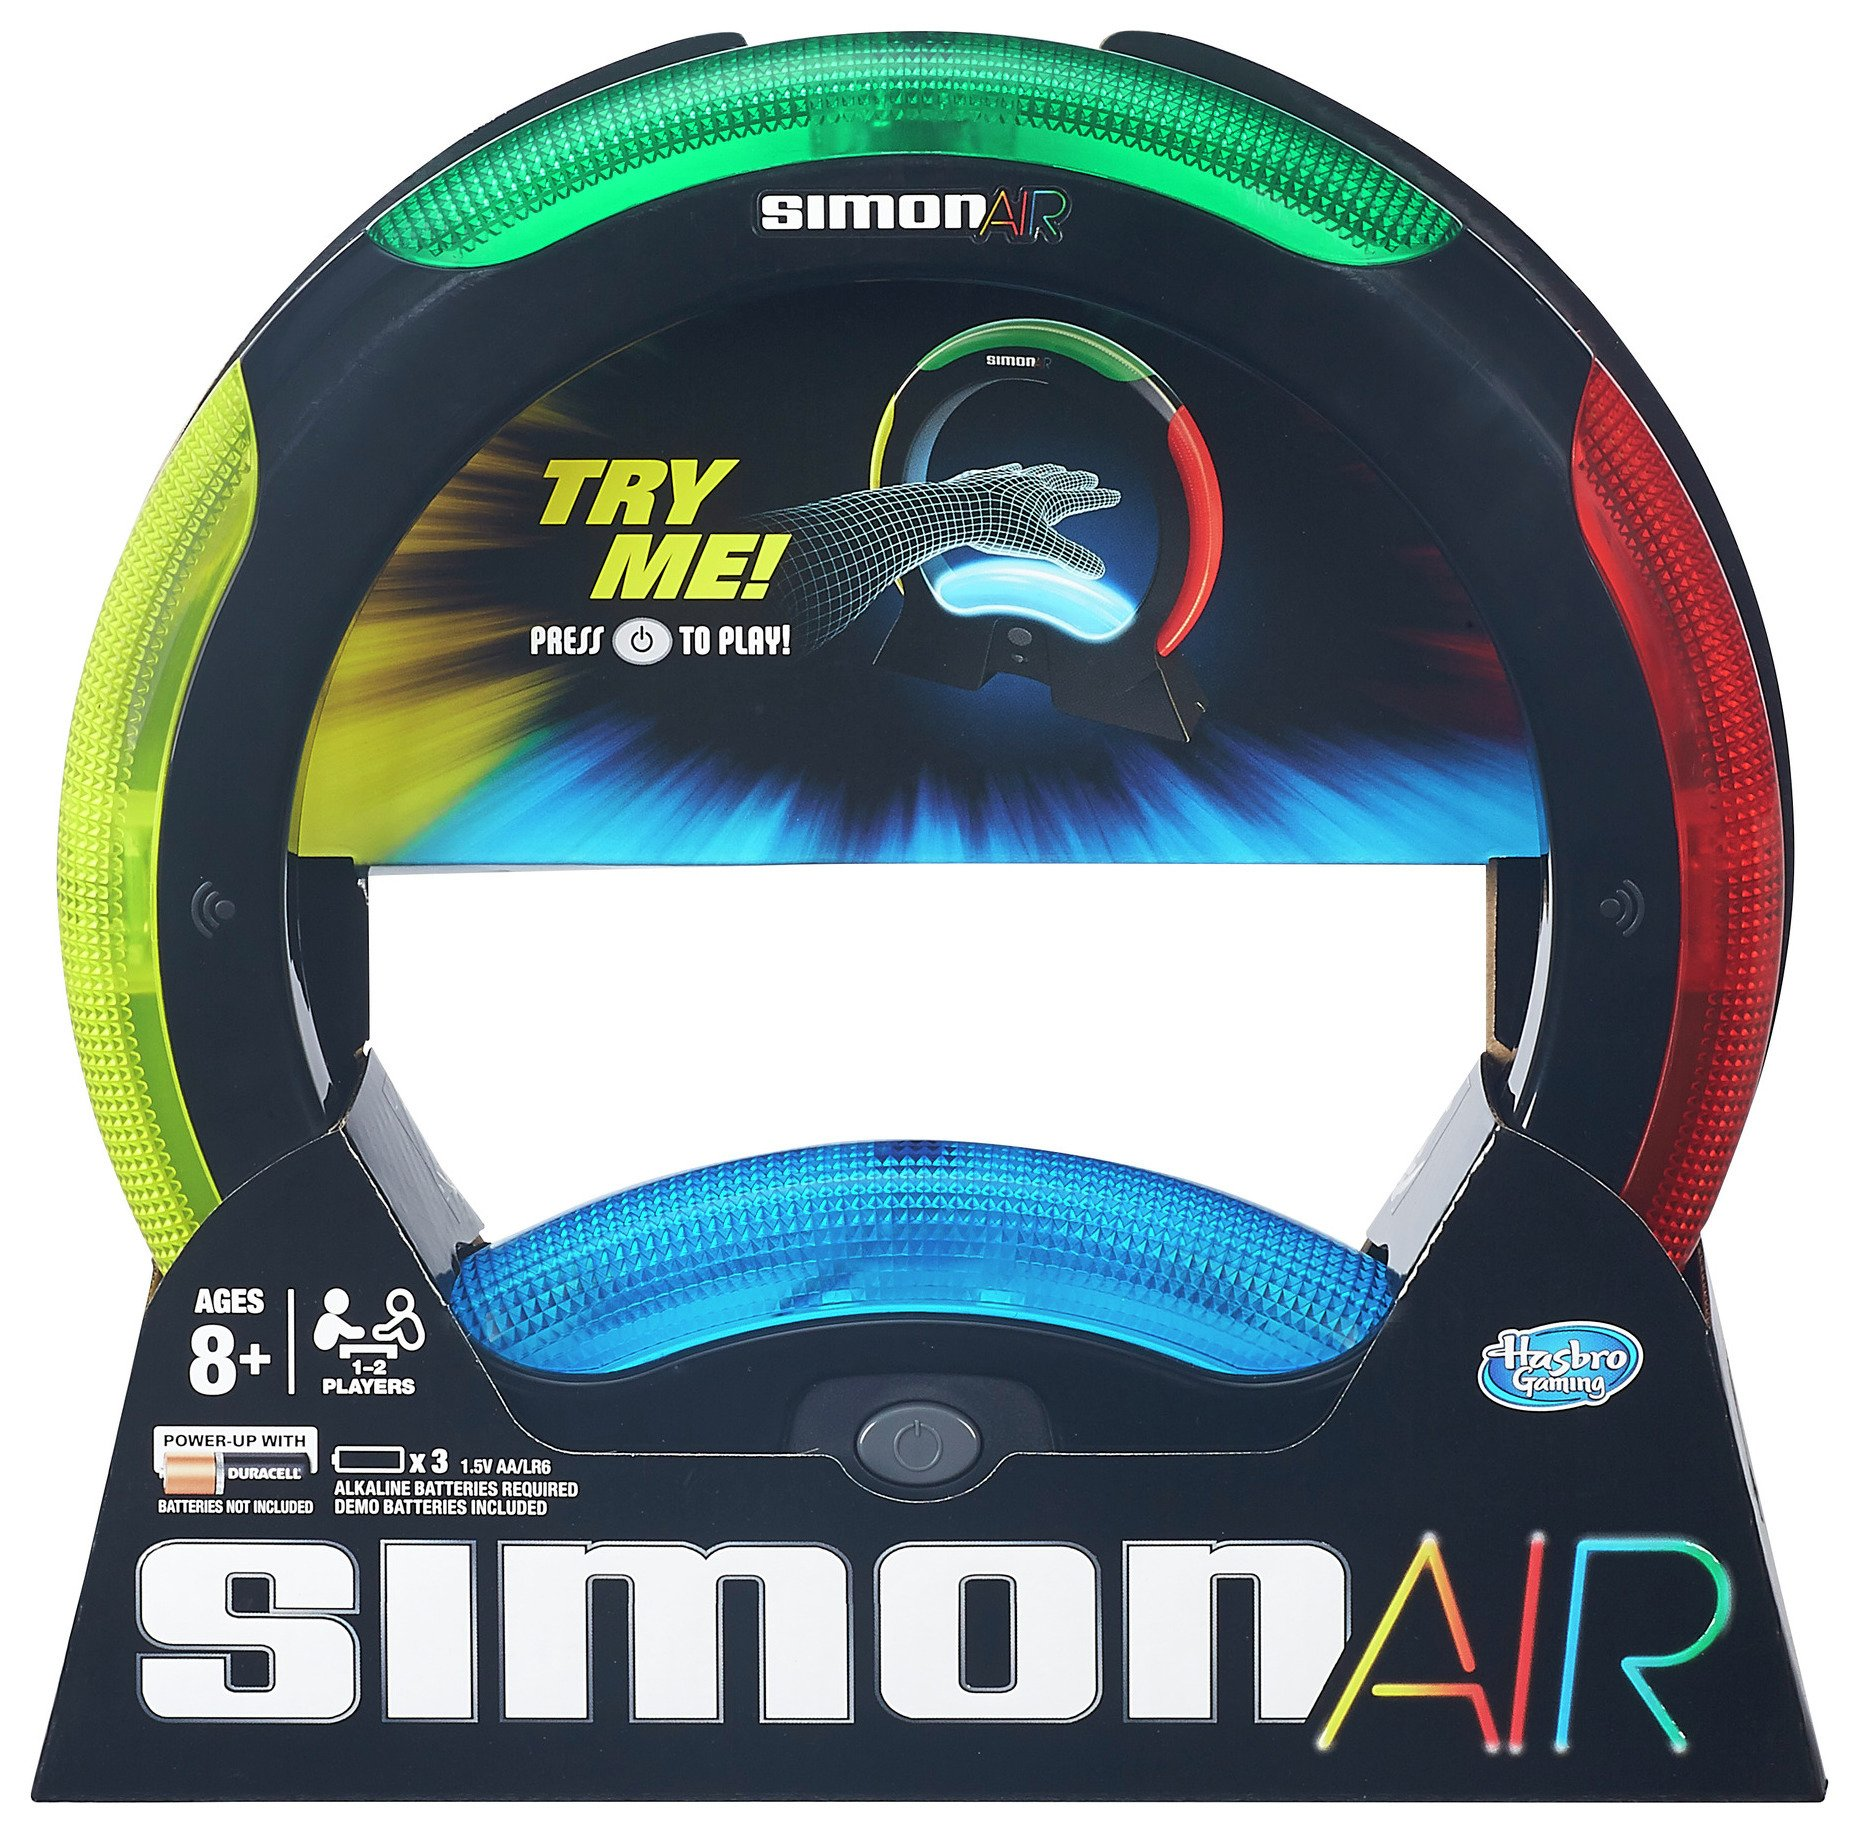 Simon Air from Hasbro Gaming